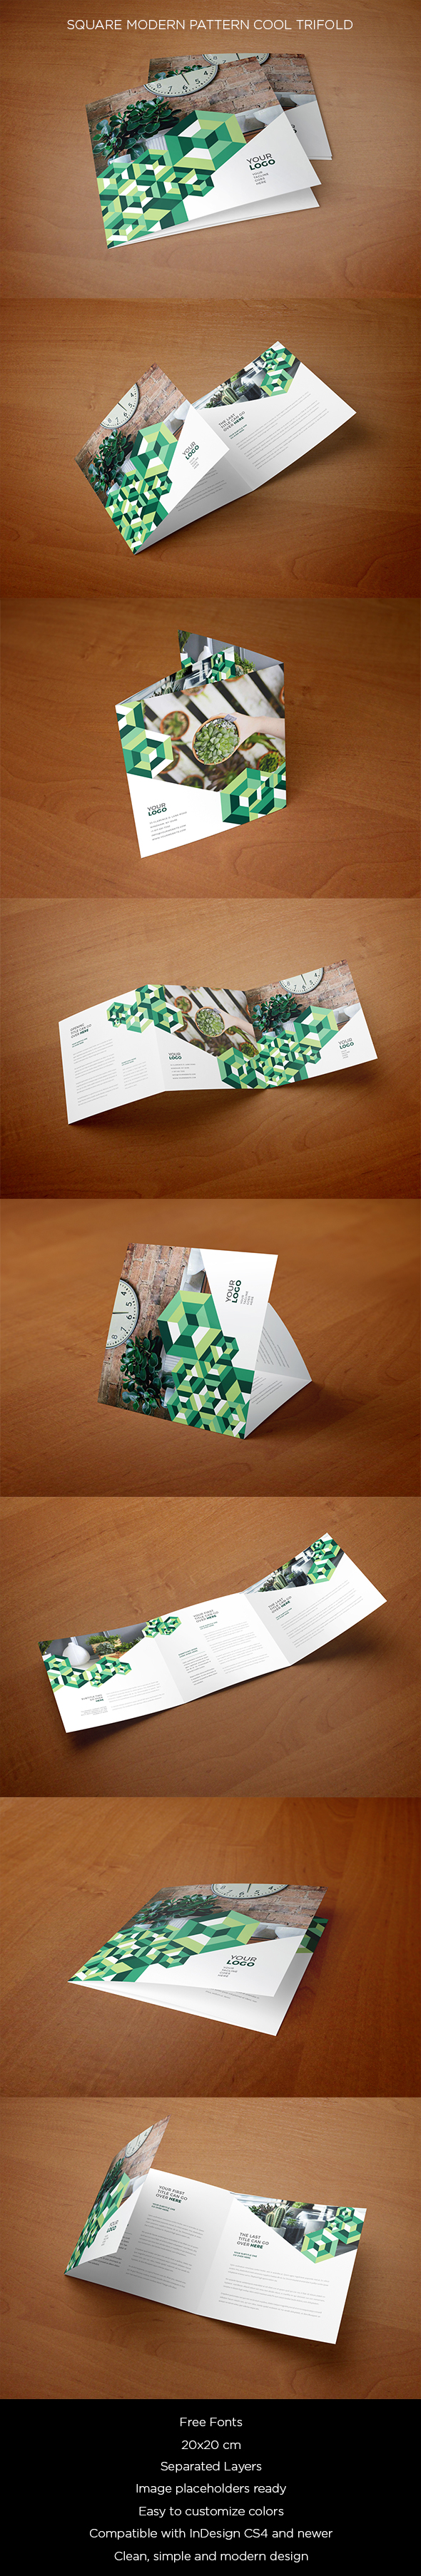 Square Modern Pattern Cool Trifold. Download here: http://goo.gl/FTG4bA